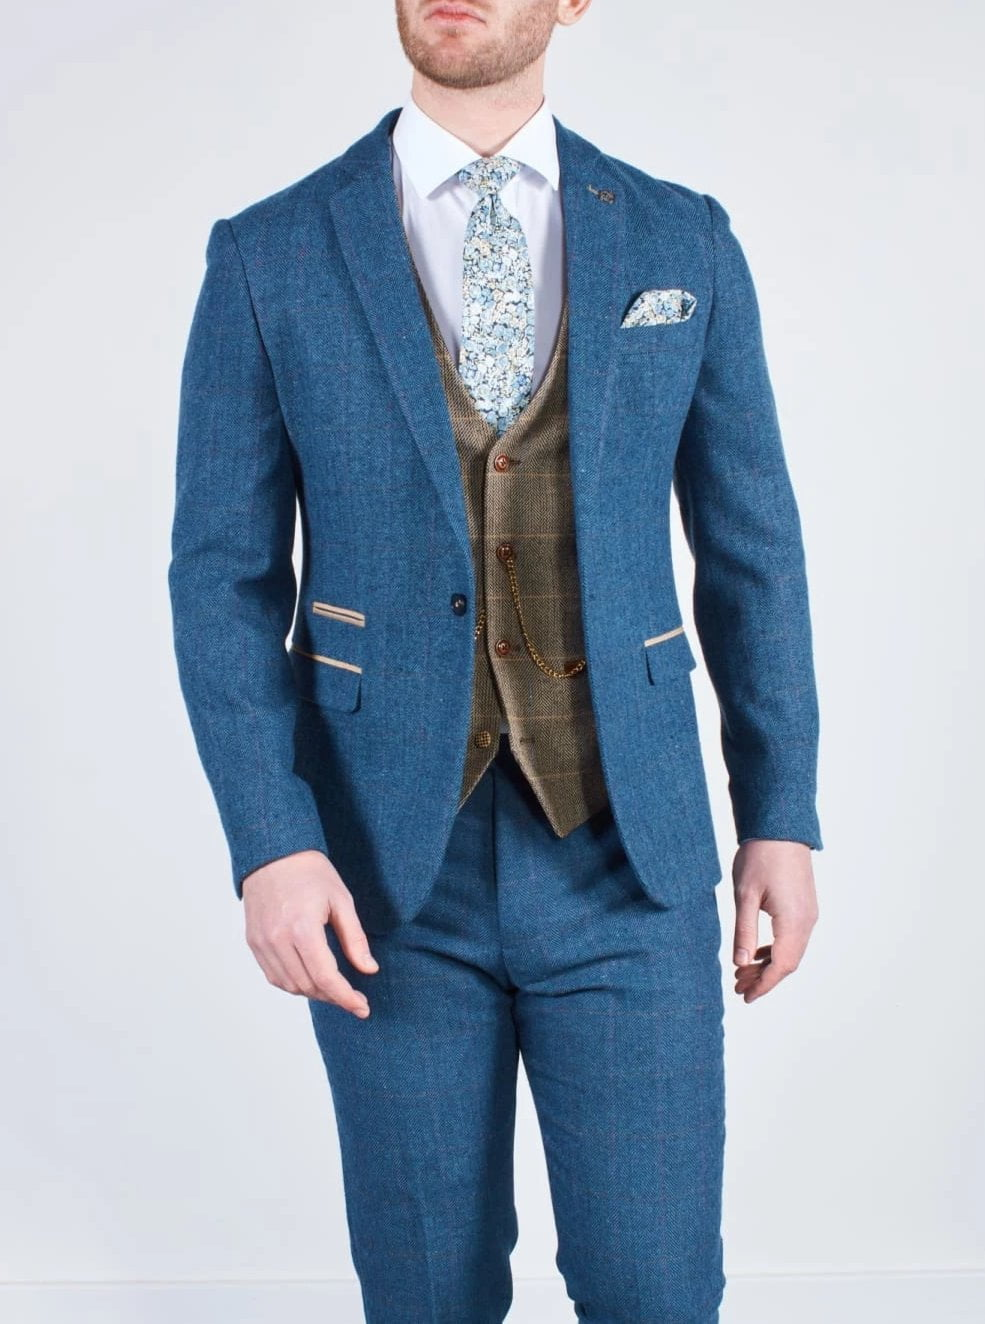 Blue Tweed Wedding Suit with Brown Waistcoat Marc Darcy Dion Ted - Suit & Tailoring